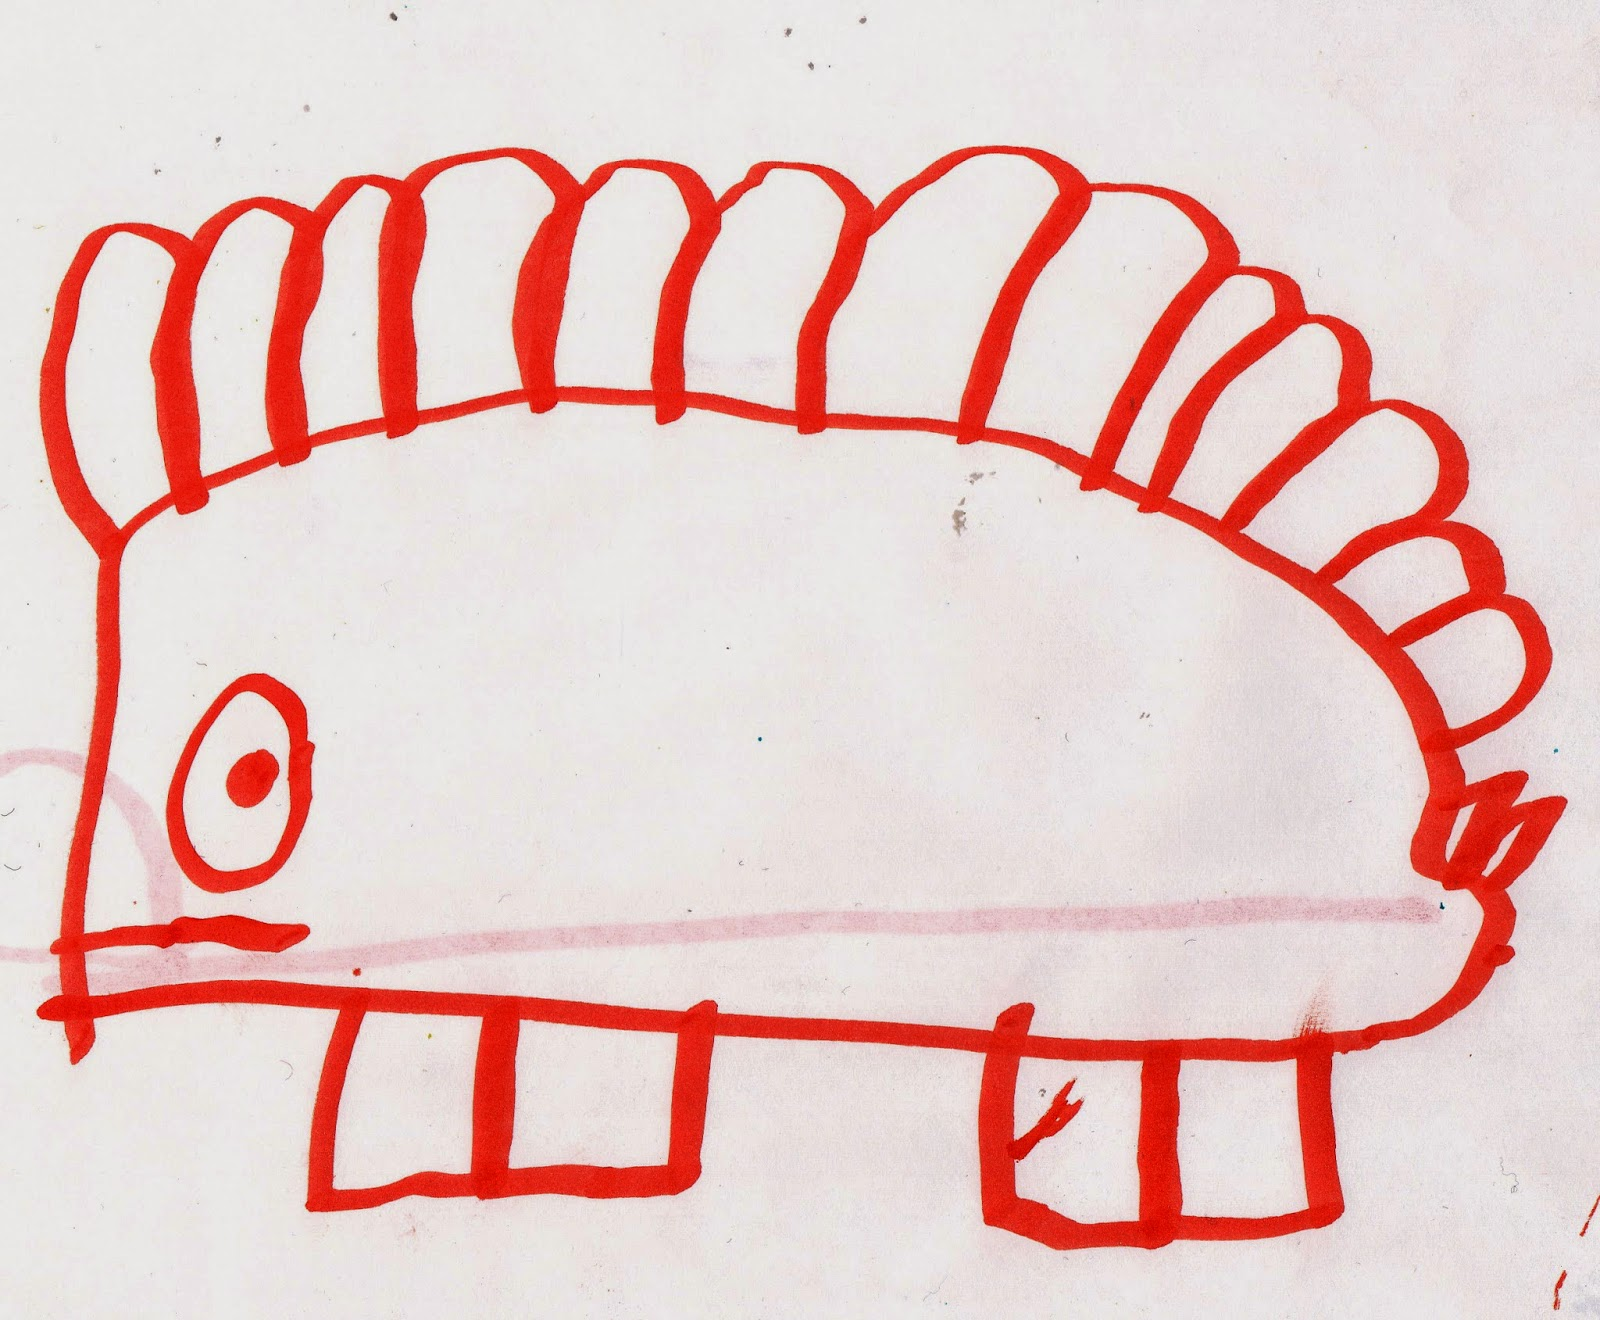 Uncategorized Preschool Drawings metamora community preschool dinosaur drawings as your child develops so will their drawing most preschoolers are beyond scribbling but remember is important that another subjec